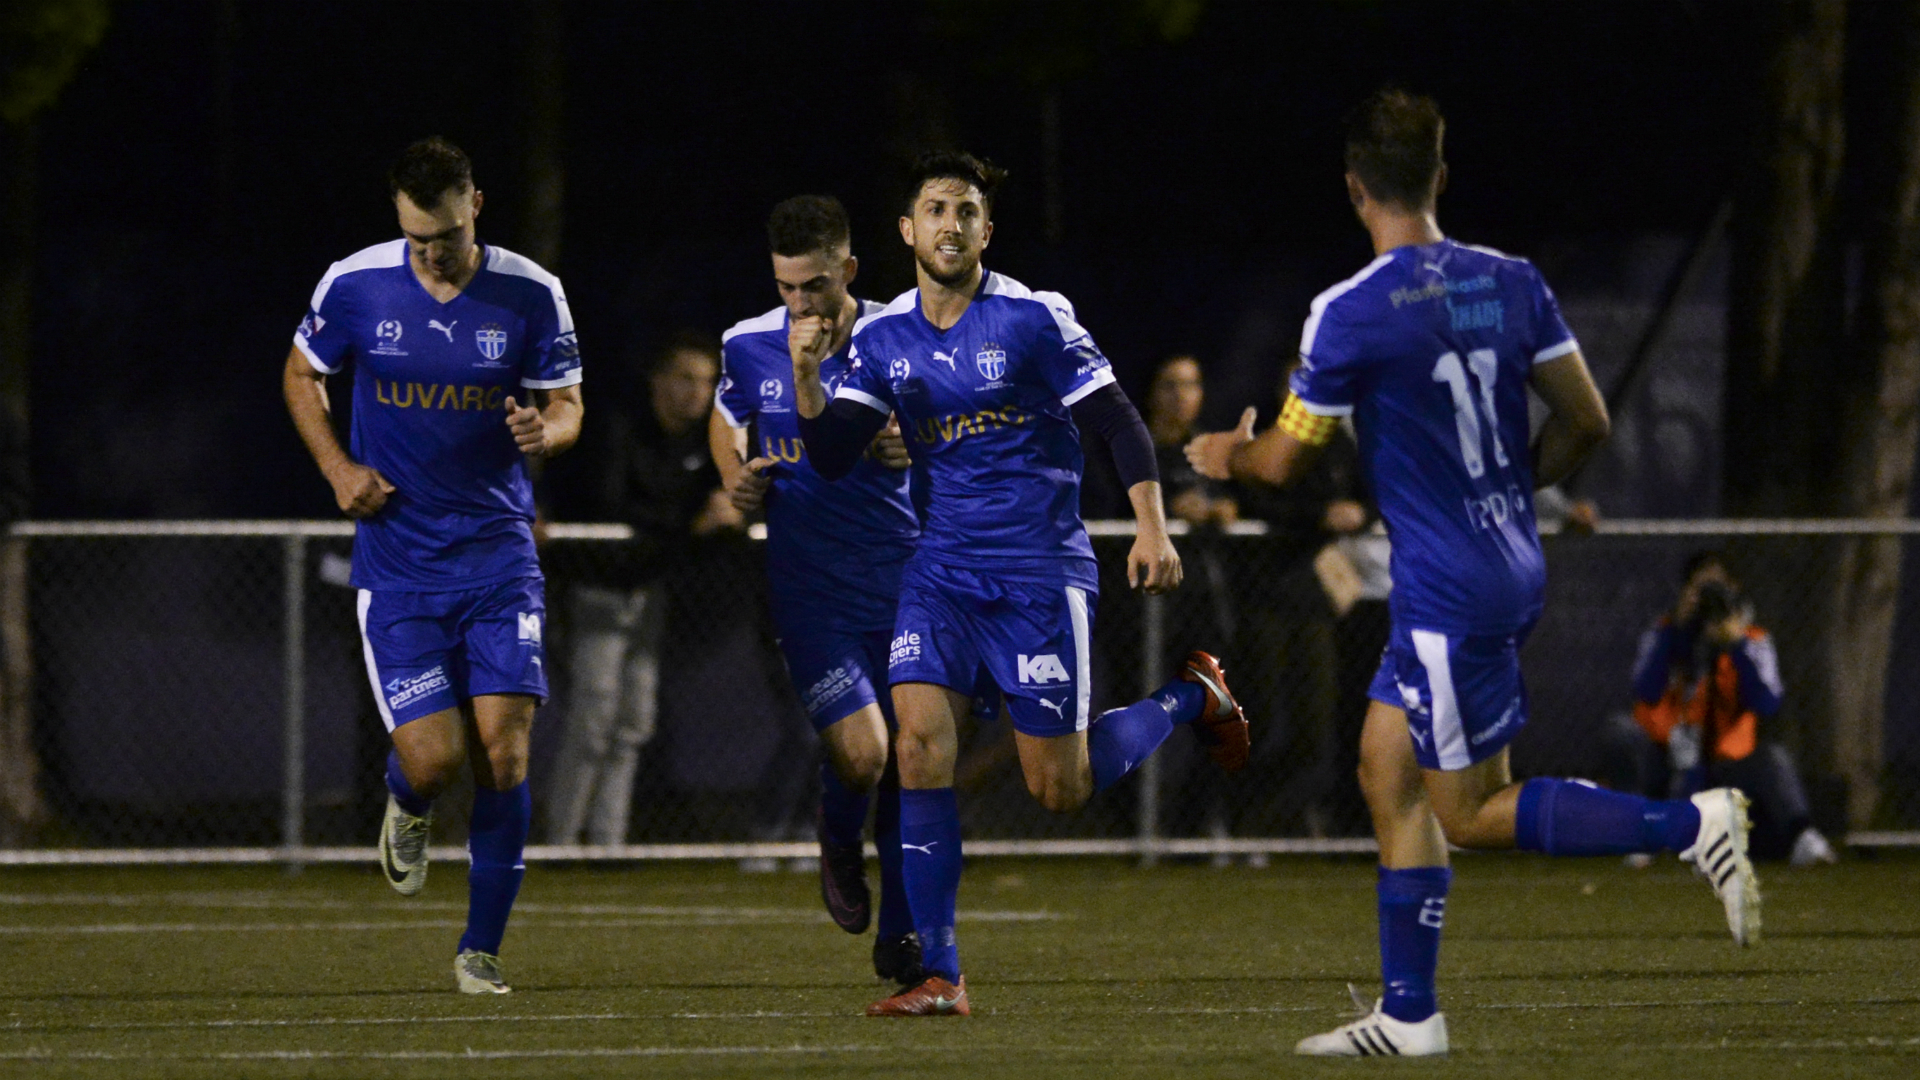 Leigh Minopoulos Bulleen Lions v South Melbourne NPL Victoria 13022017